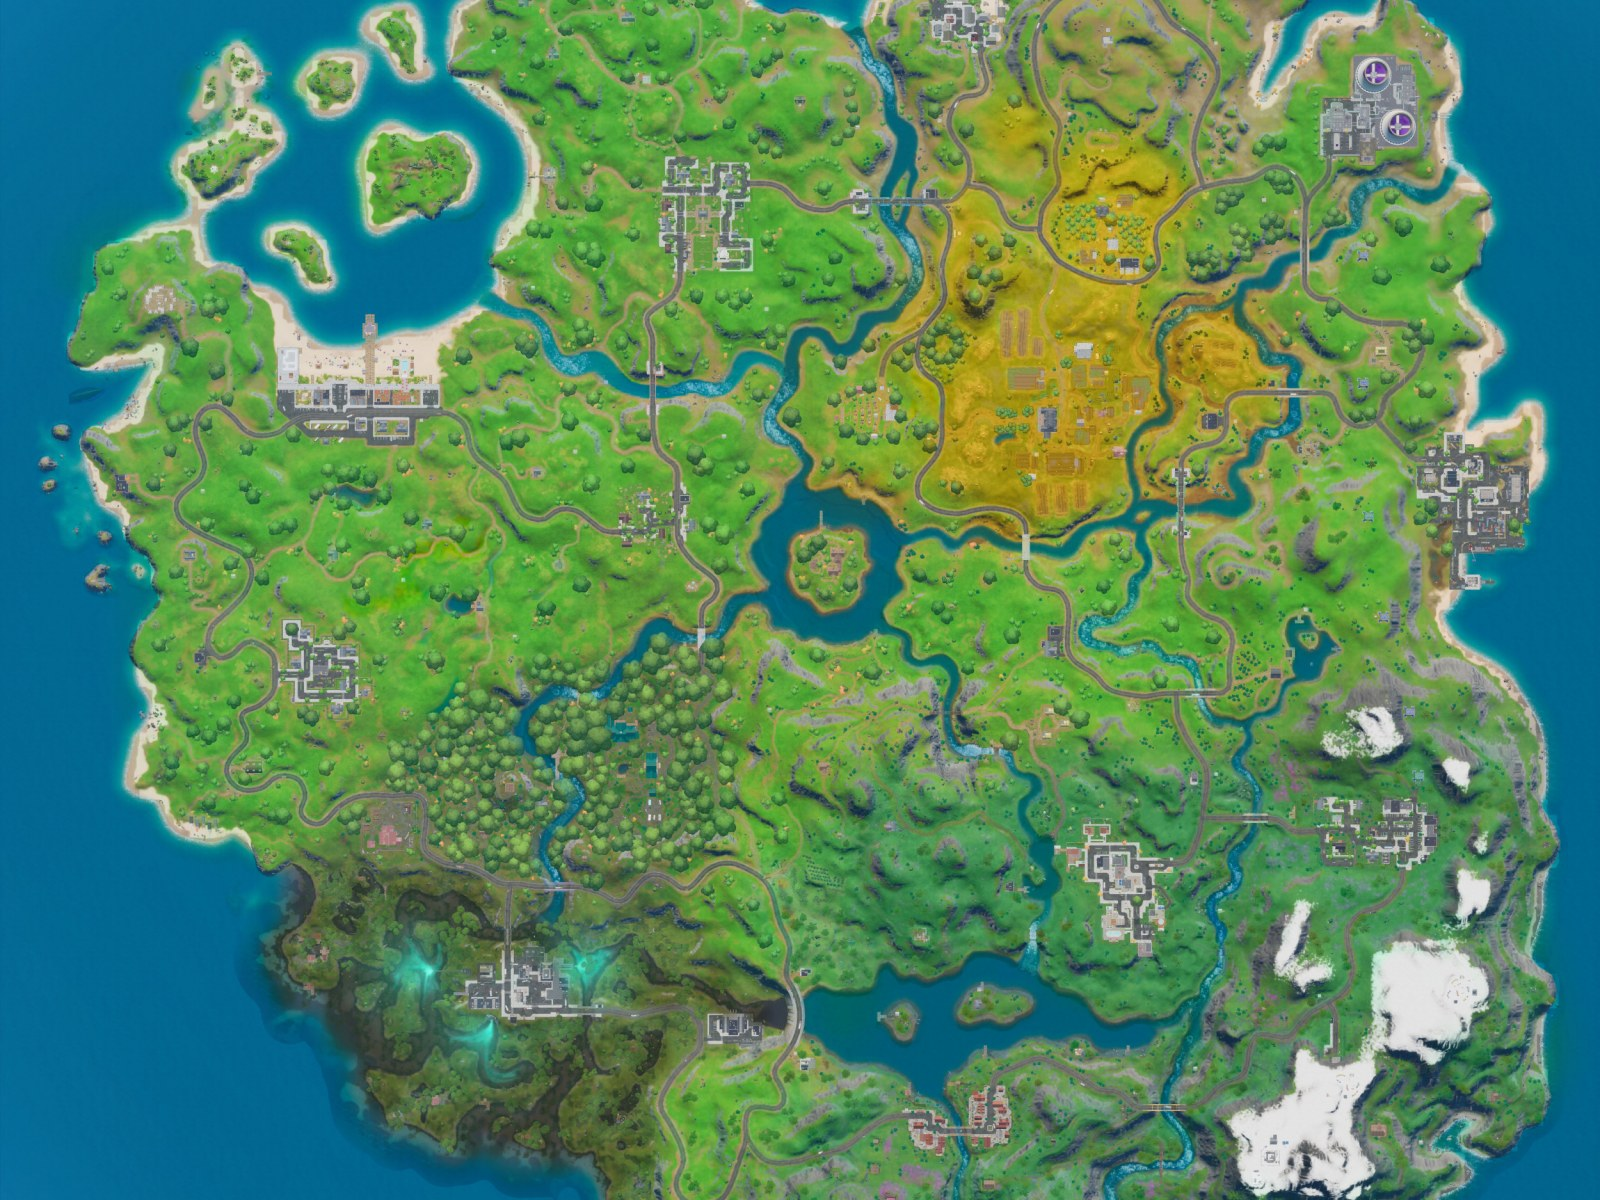 Fortnite Update 11 0 Adds Chapter 2 Map Boats Weapon Upgrades Patch Notes Fortnite update 3.5 won't release until next week, but we already know a few details about the fixes and new additions it might feature. fortnite update 11 0 adds chapter 2